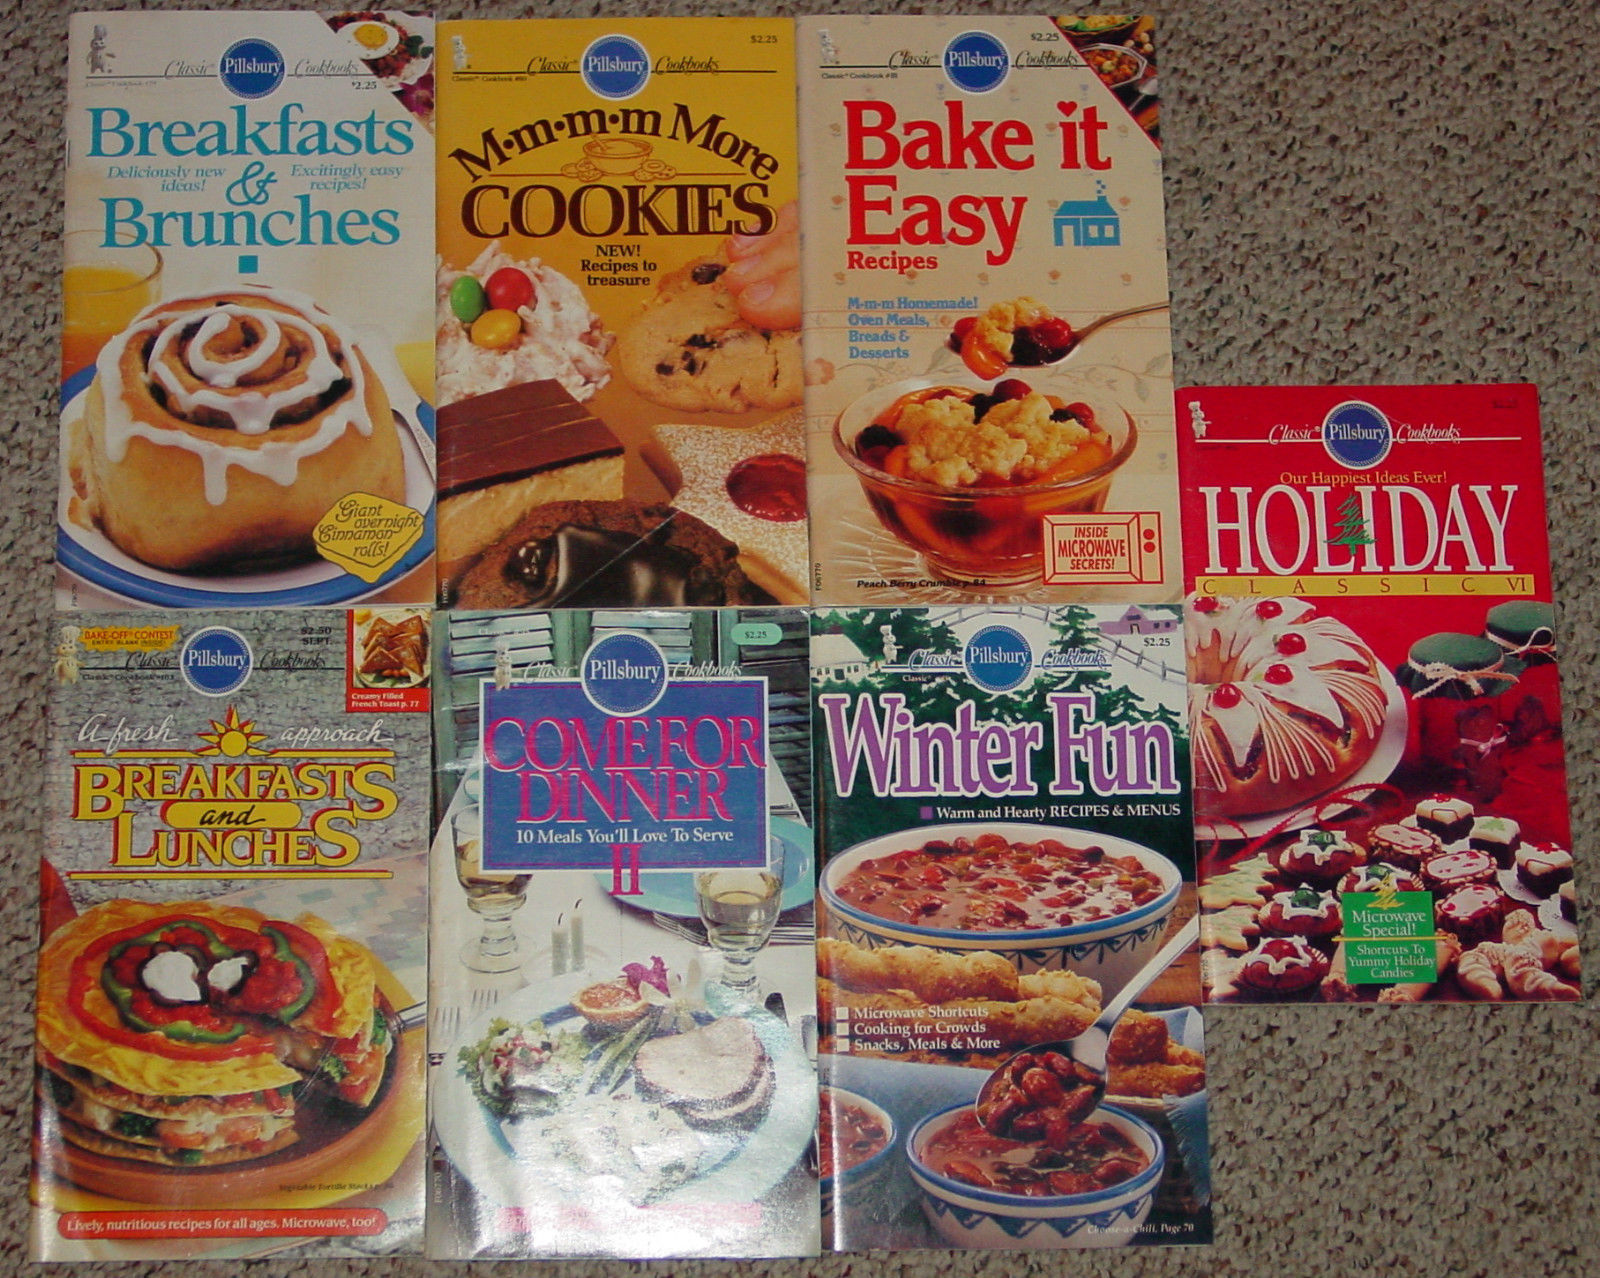 pillsbury case marketing The canadian pillsbury ready-baked goods cookie line is experiencing disappointing performance, and the marketing manager at general mills canada corporation is under pressure to make strategic decisions that will help turn around the segment.